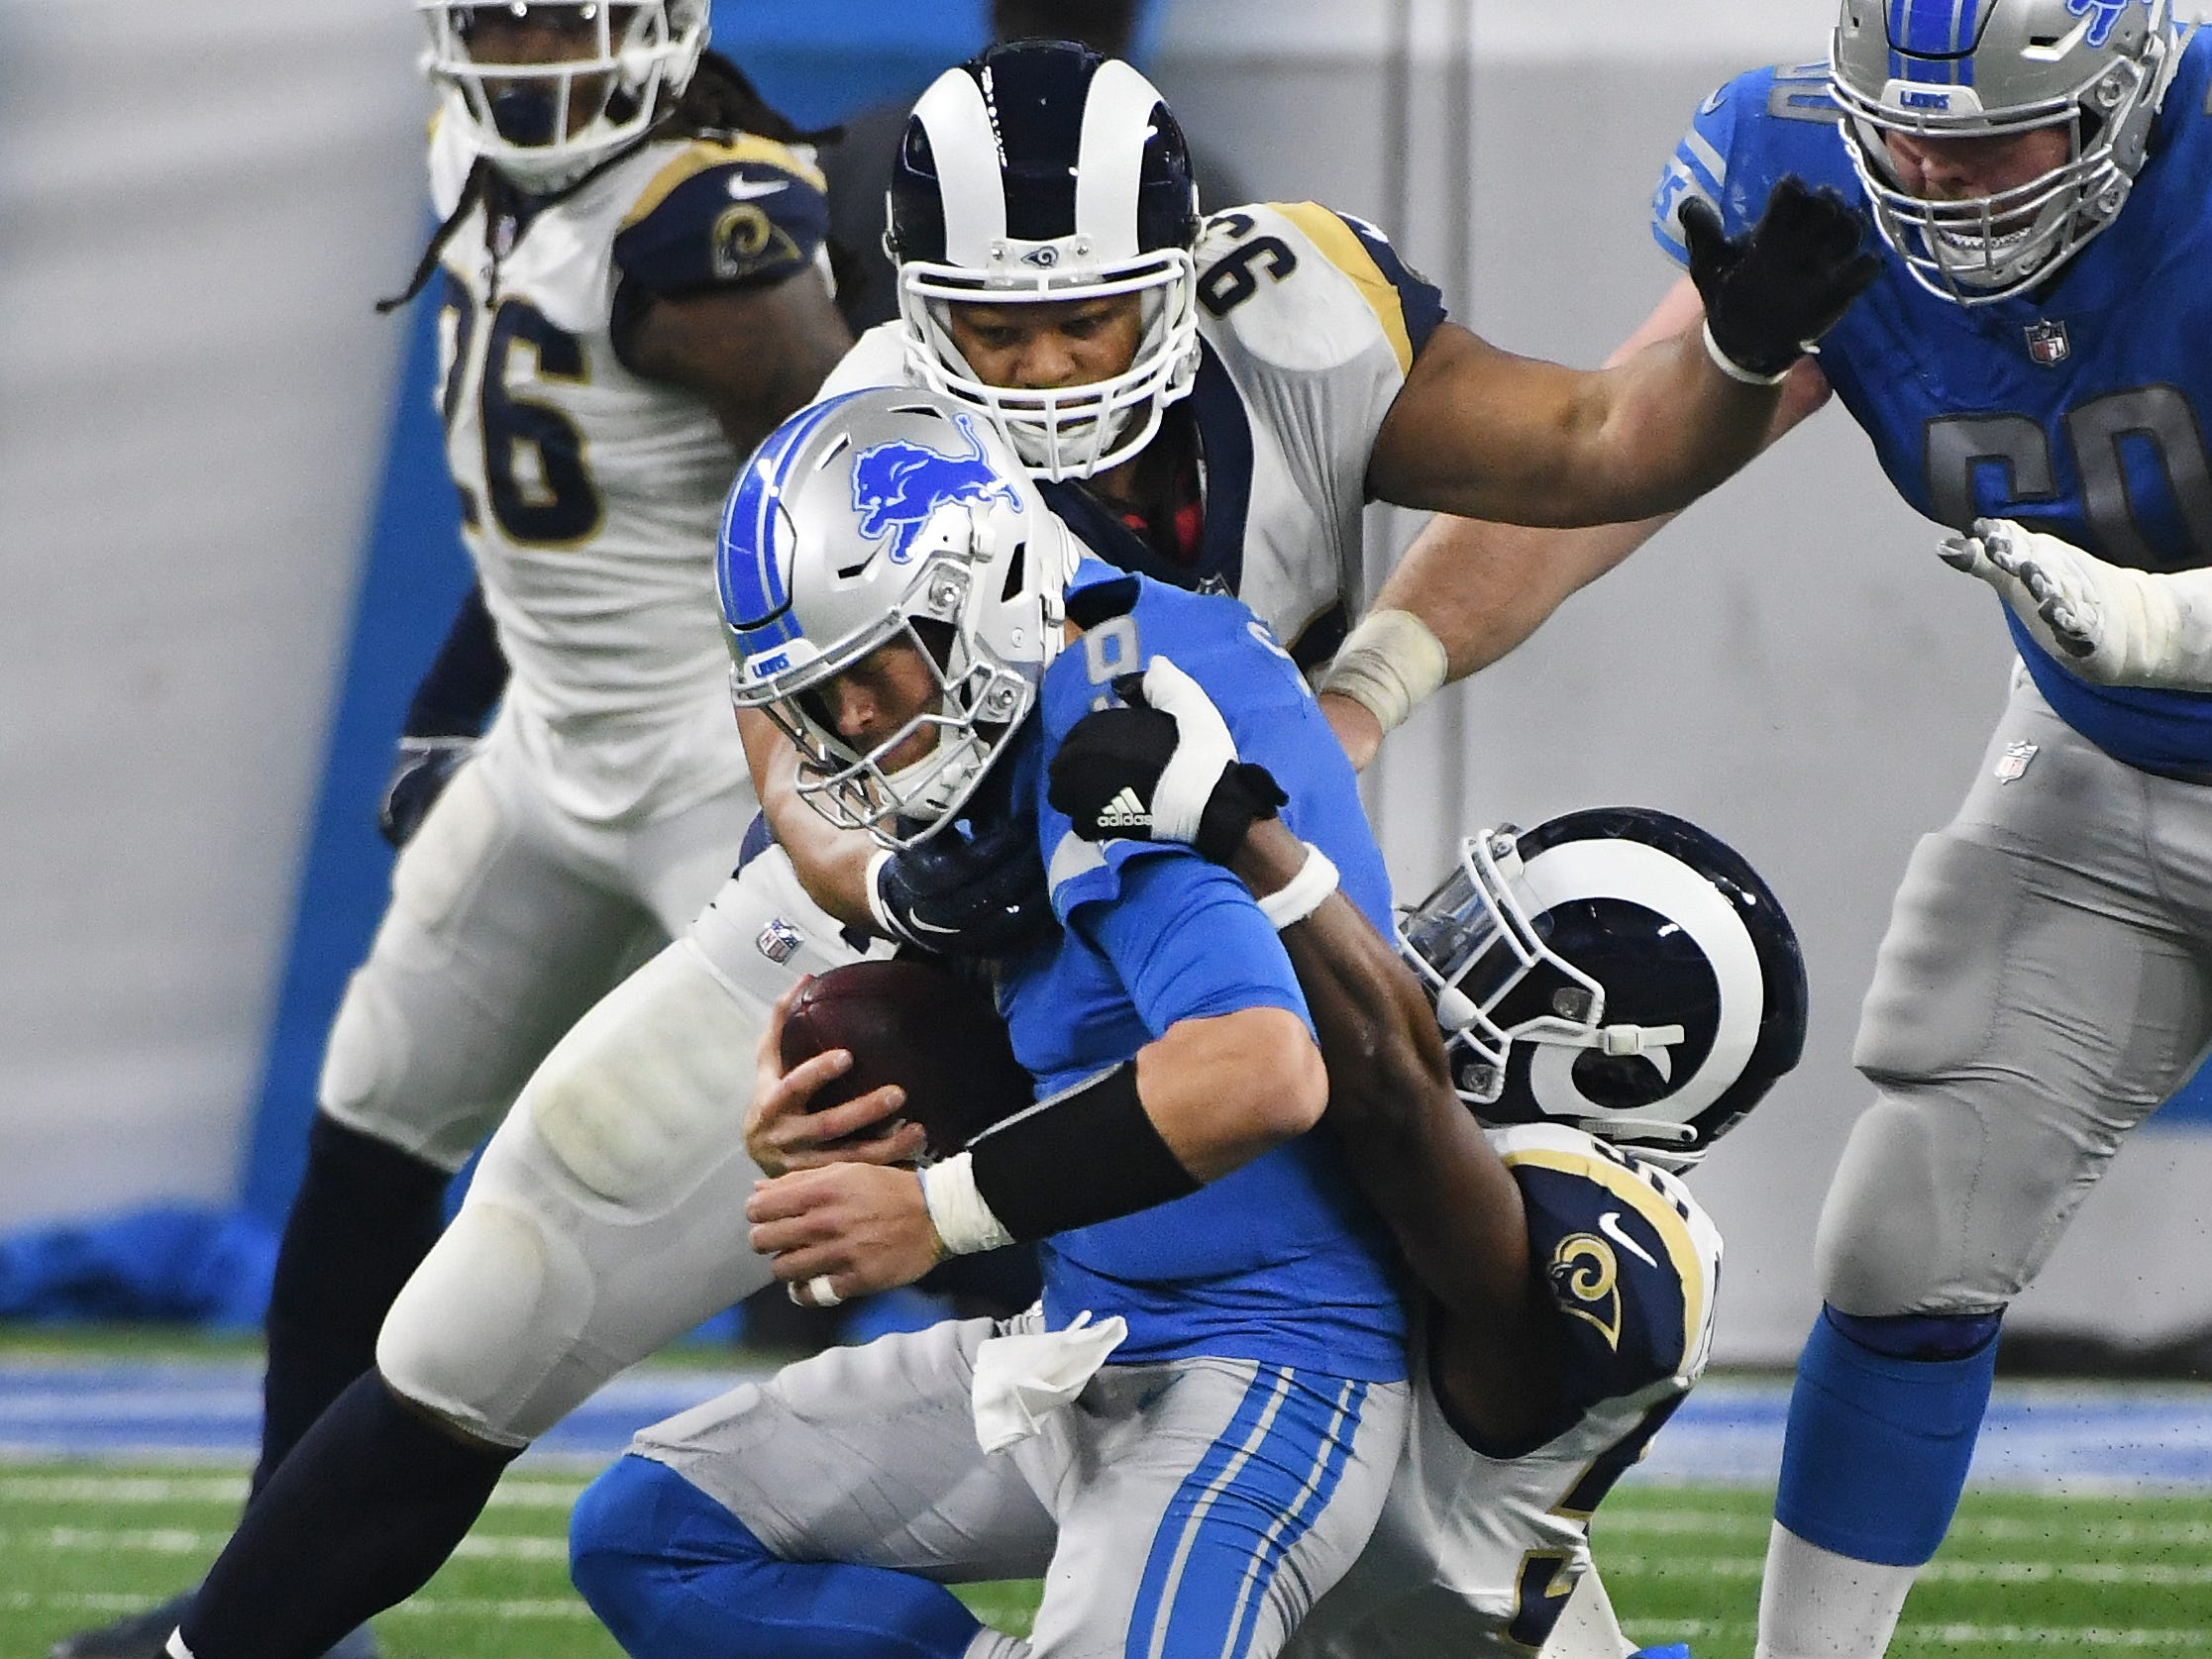 Lions quarterback Matthew Stafford is sacked by Ram's Cory Littleton, with former Lions, Rams defensive tackle Ndamukong Suh finishing it up in the first quarter of the 30-16 loss to Los Angeles at Ford Field in Detroit, Michigan on December 2, 2018.